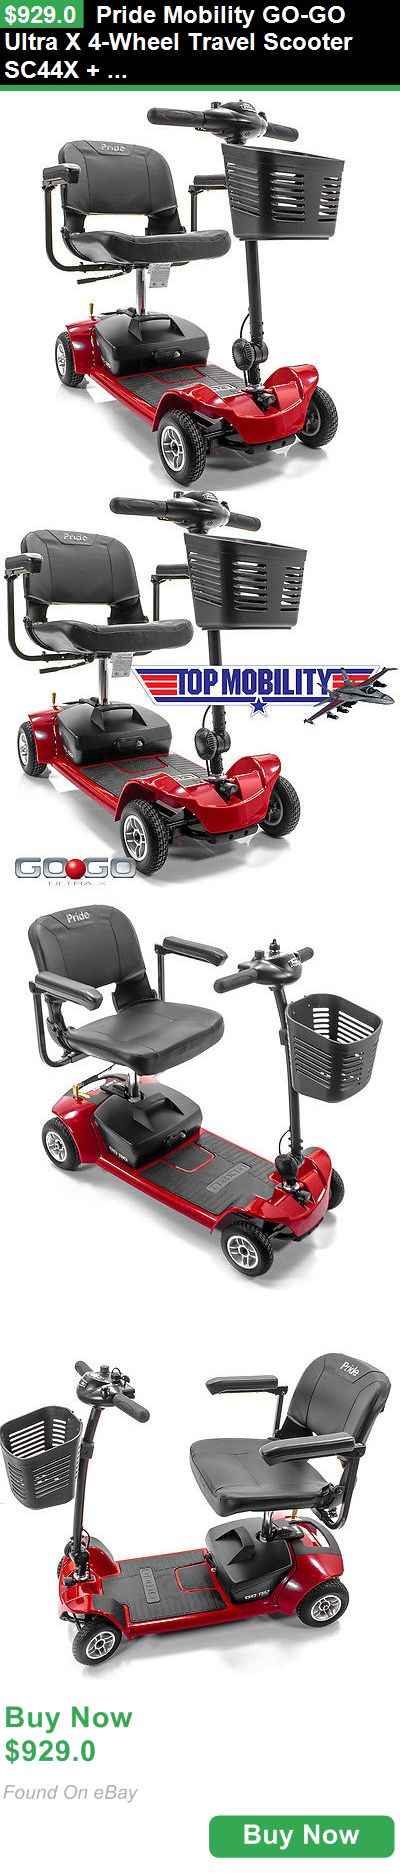 Mobility Scooters 75068: Pride Mobility Go-Go Ultra X 4-Wheel Travel Scooter Sc44x + Free Accessories BUY IT NOW ONLY: $929.0